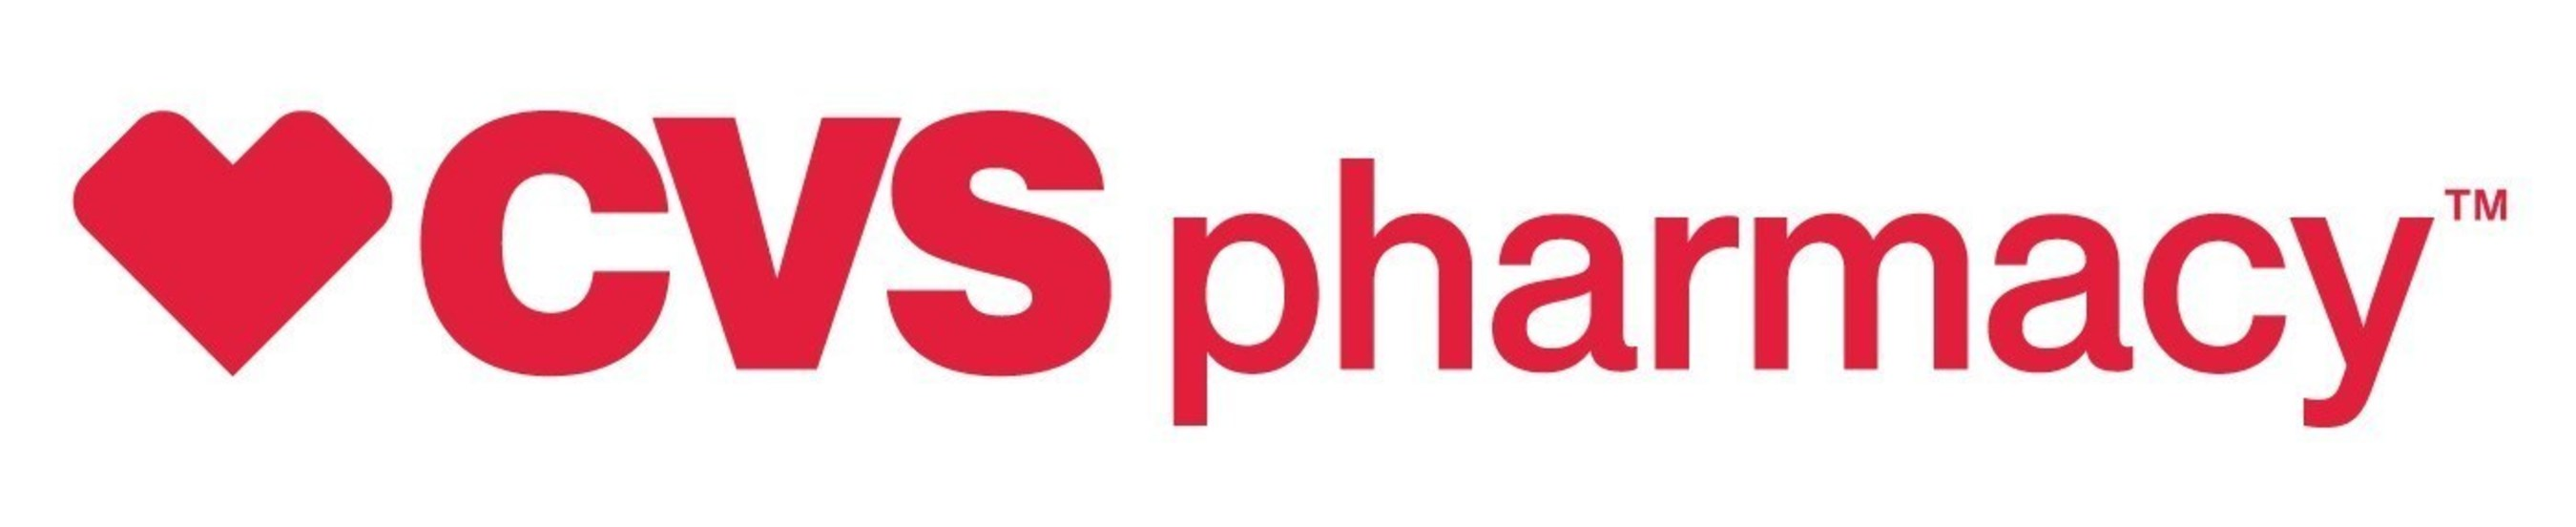 cvs pharmacy to help patients understand health insurance options during medicare part d open